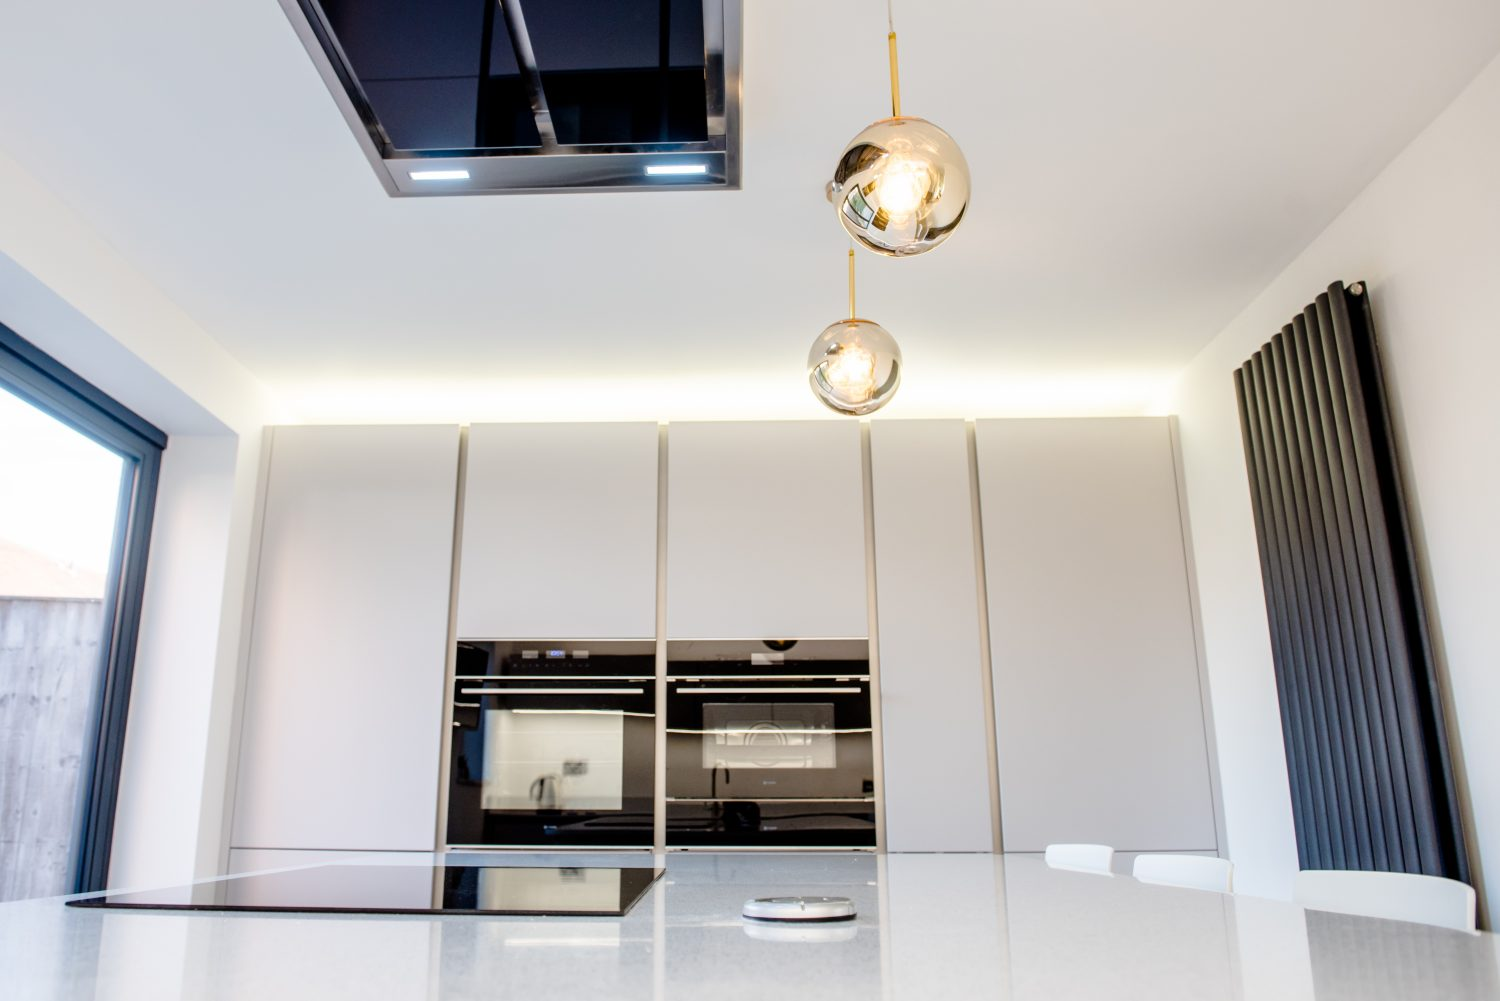 Long Eaton designer kitchens